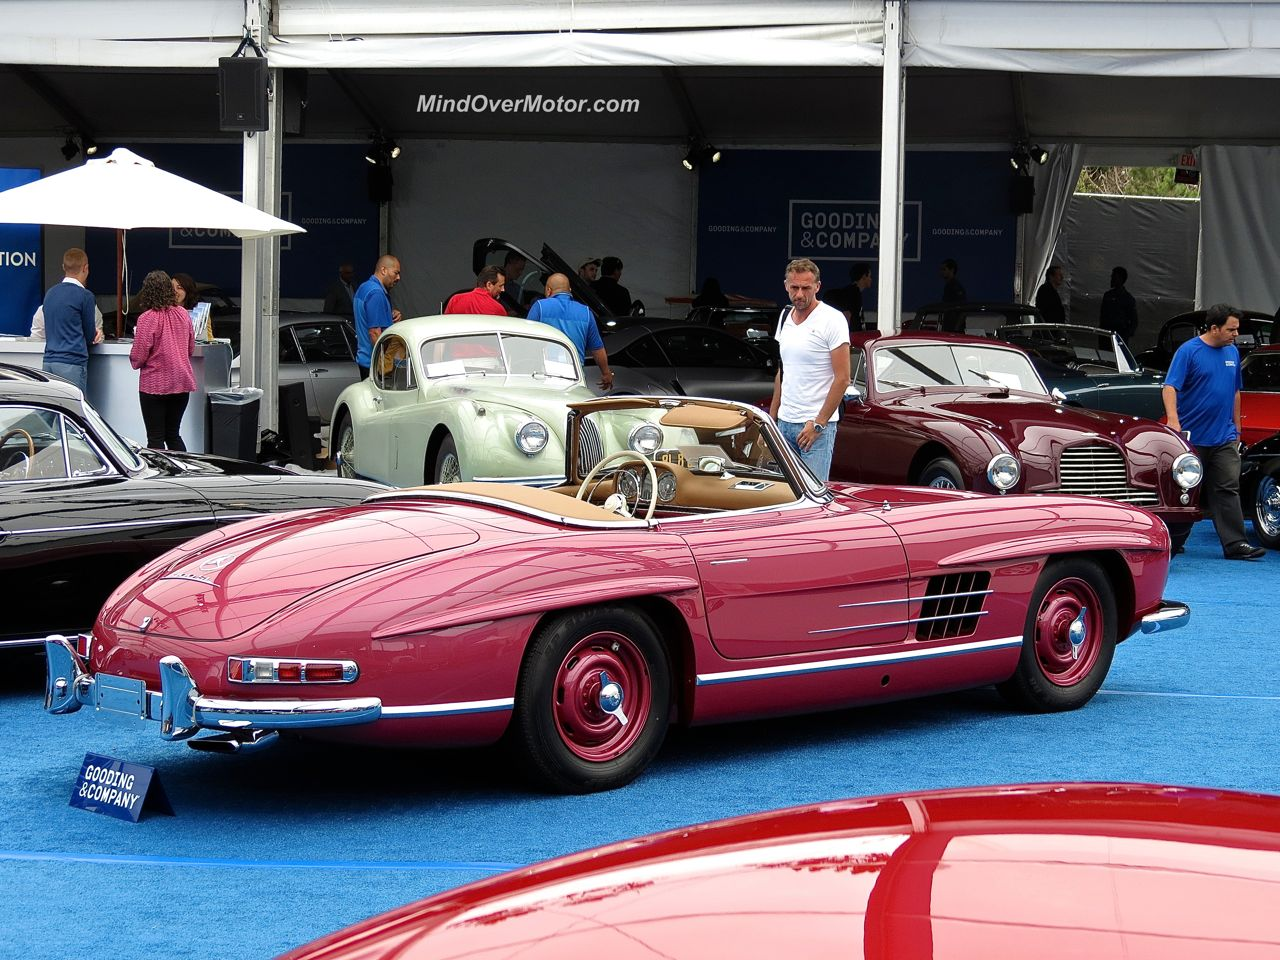 Mercedes Benz 300SL Roadster at Gooding & Company Pebble Beach